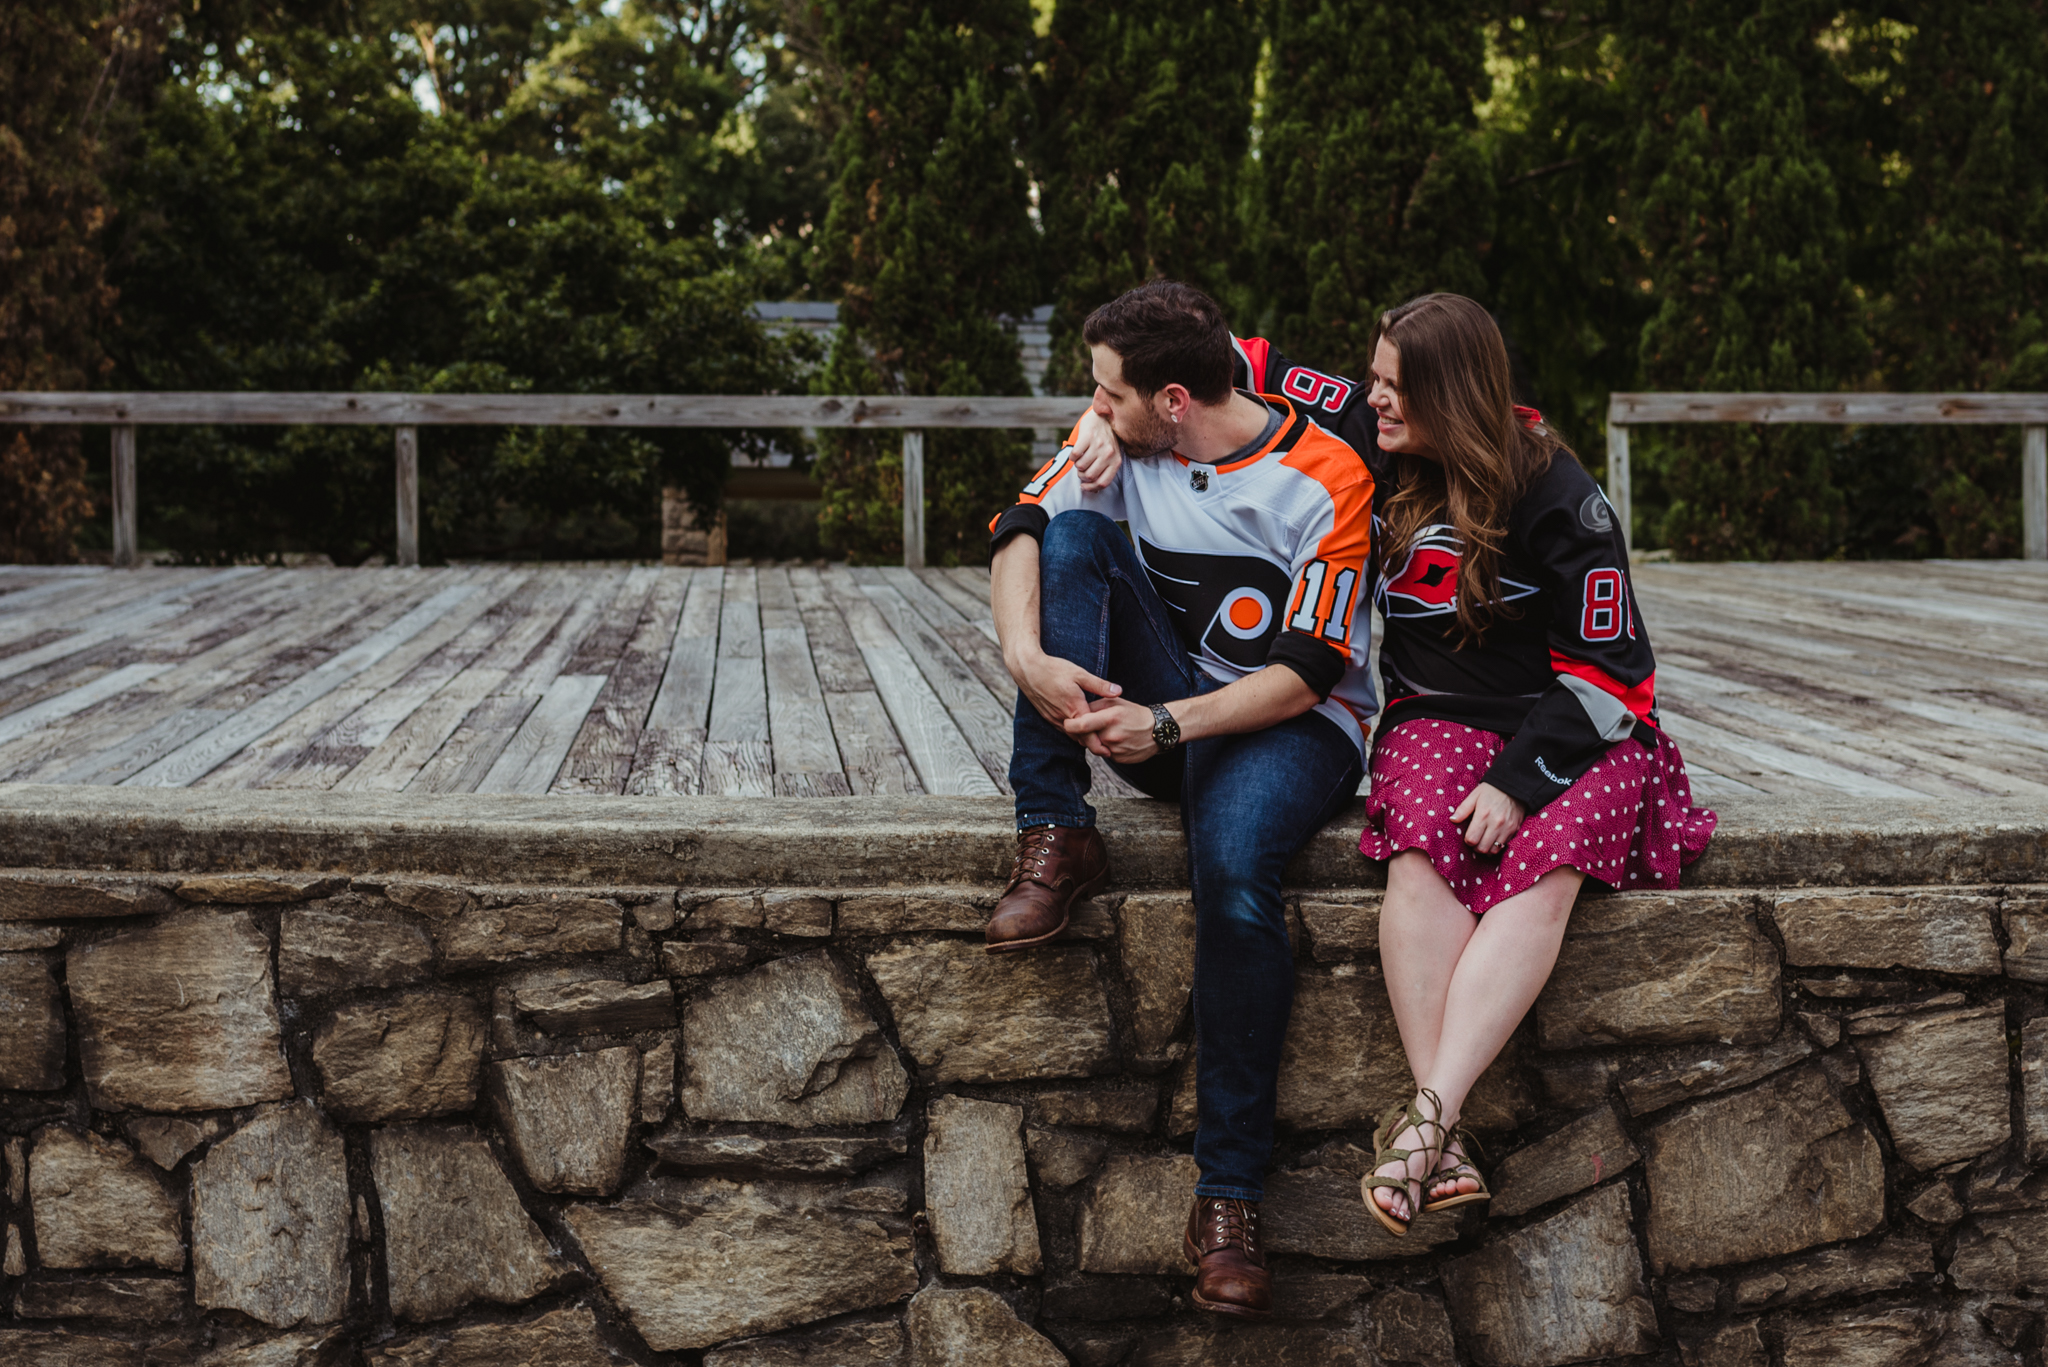 The bride and groom to be, in their Flyers and Hurricanes hockey jerseys, sit on the Little Theater stage at the Raleigh Rose Garden during their engagement session with Rose Trail Images.